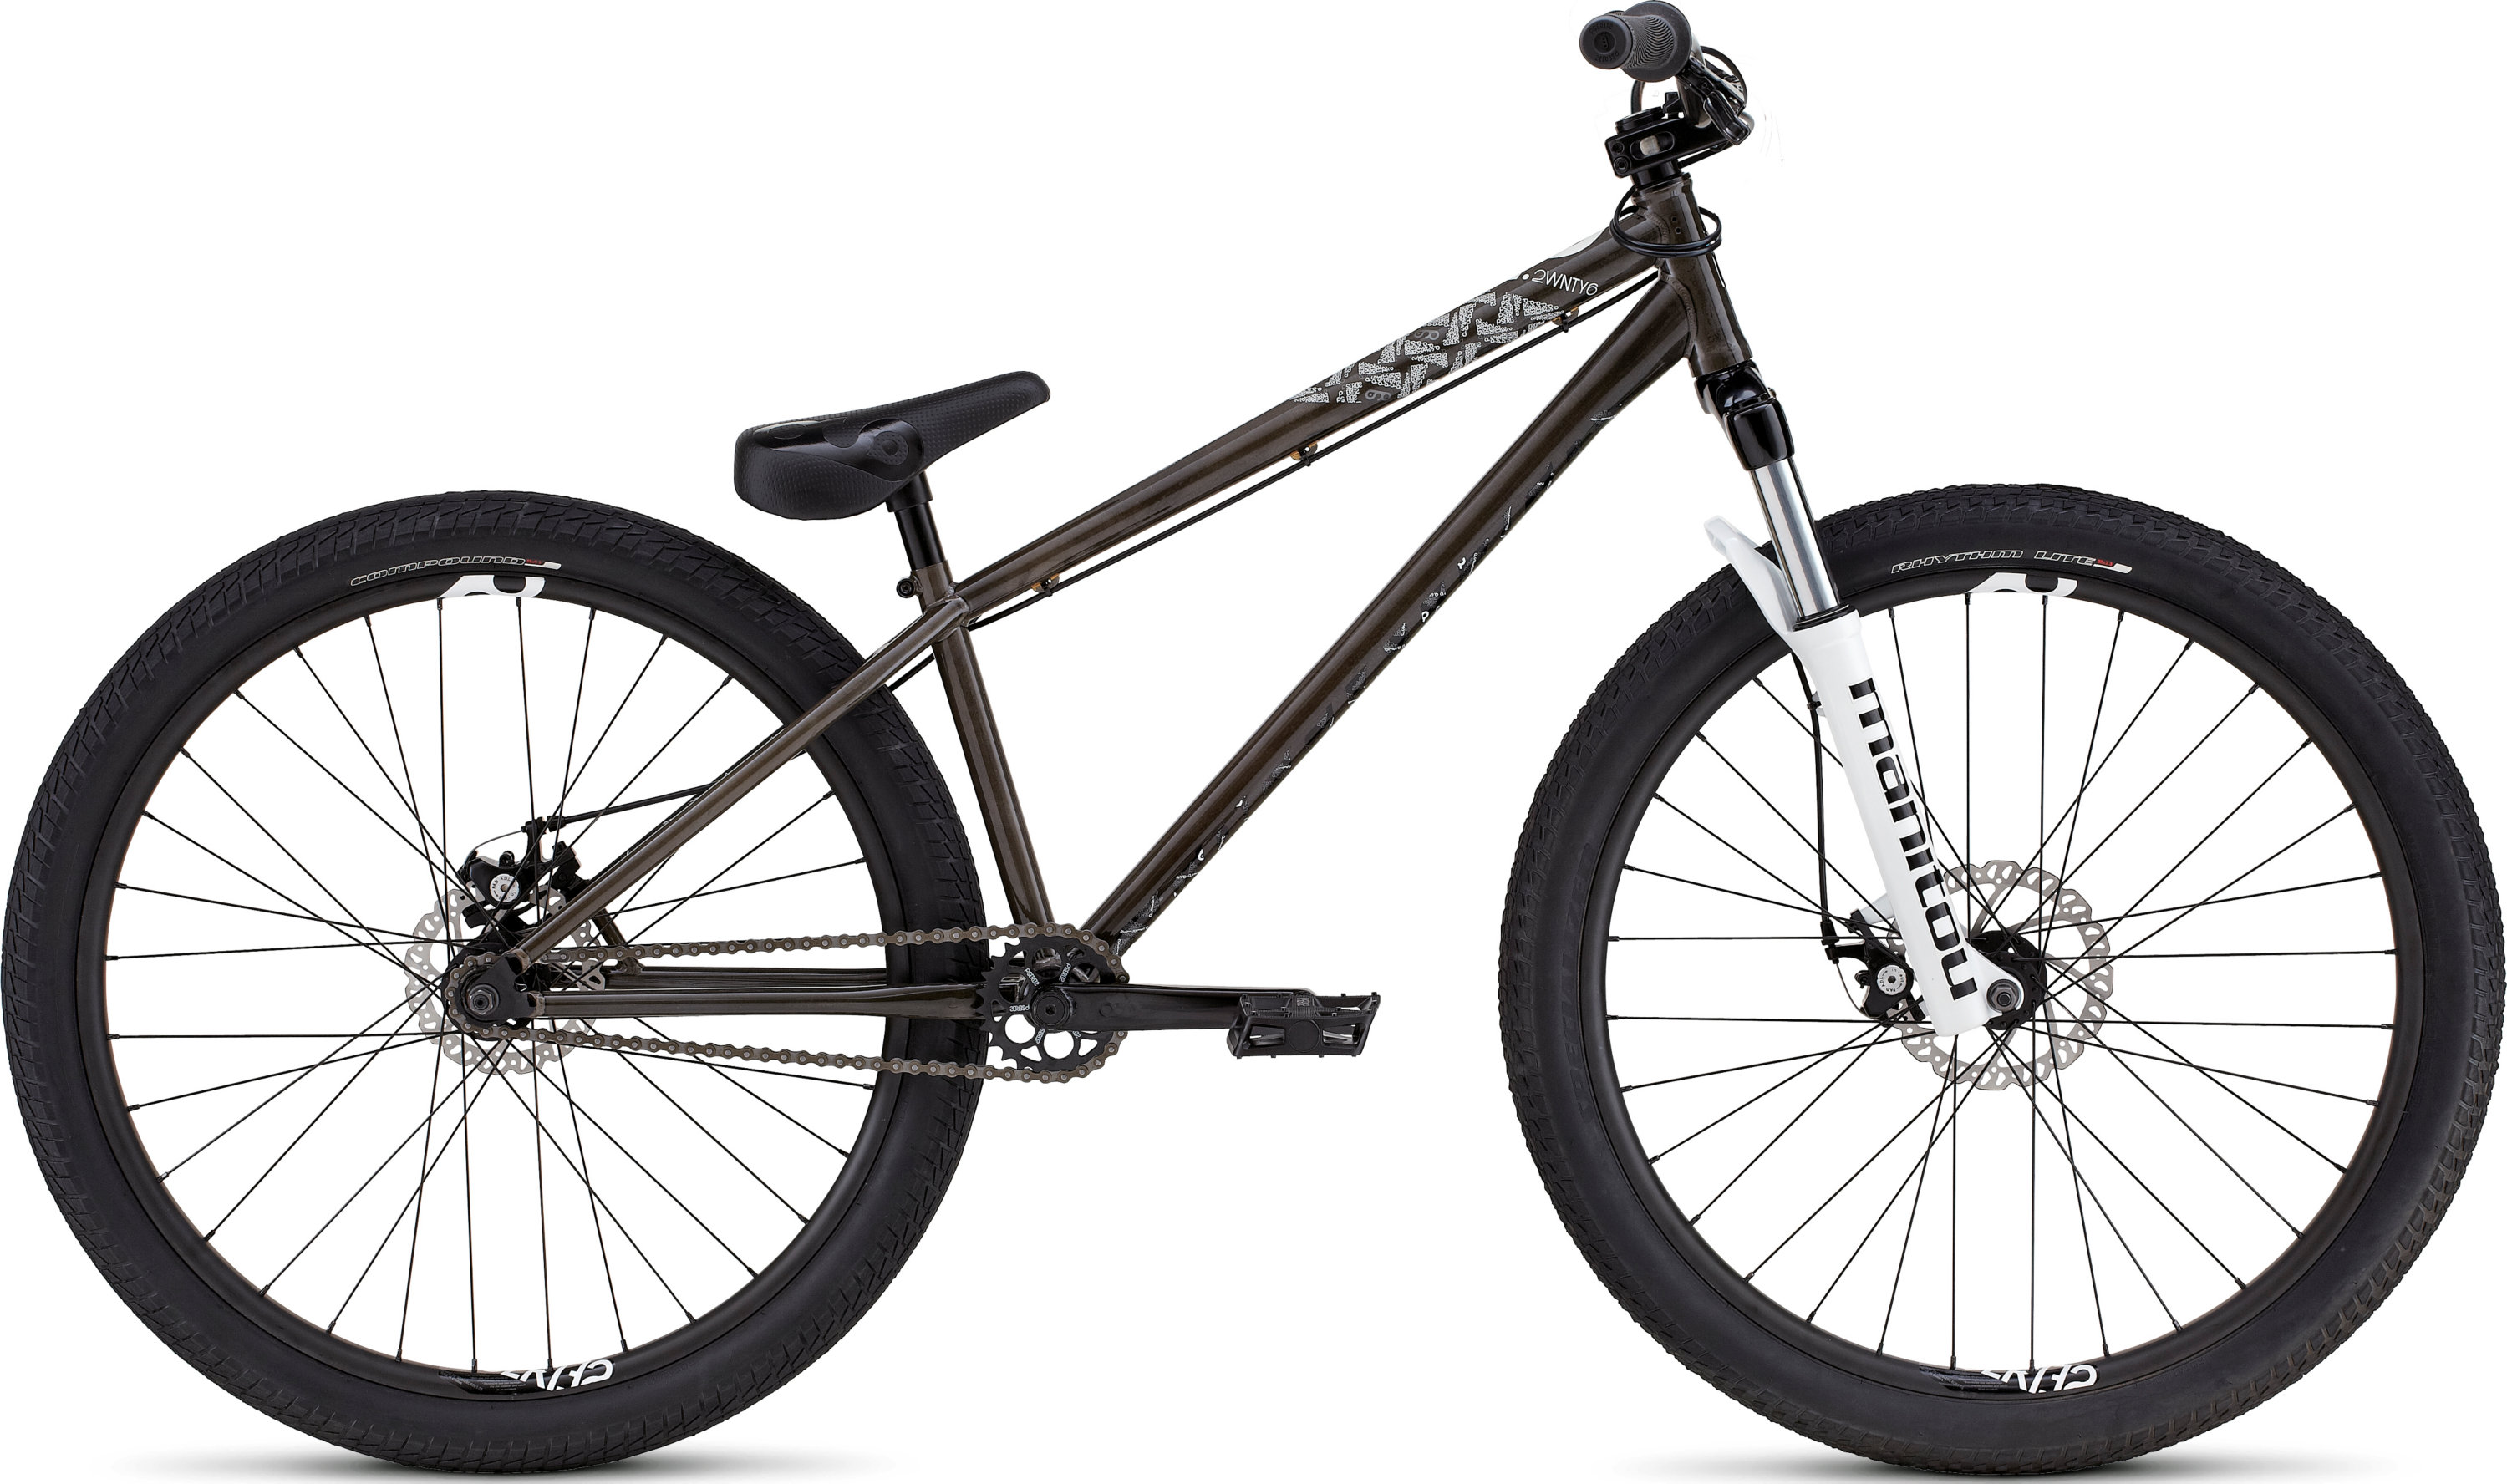 SPECIALIZED P26 CHRM/WHT/BLK 22 - Bike Maniac